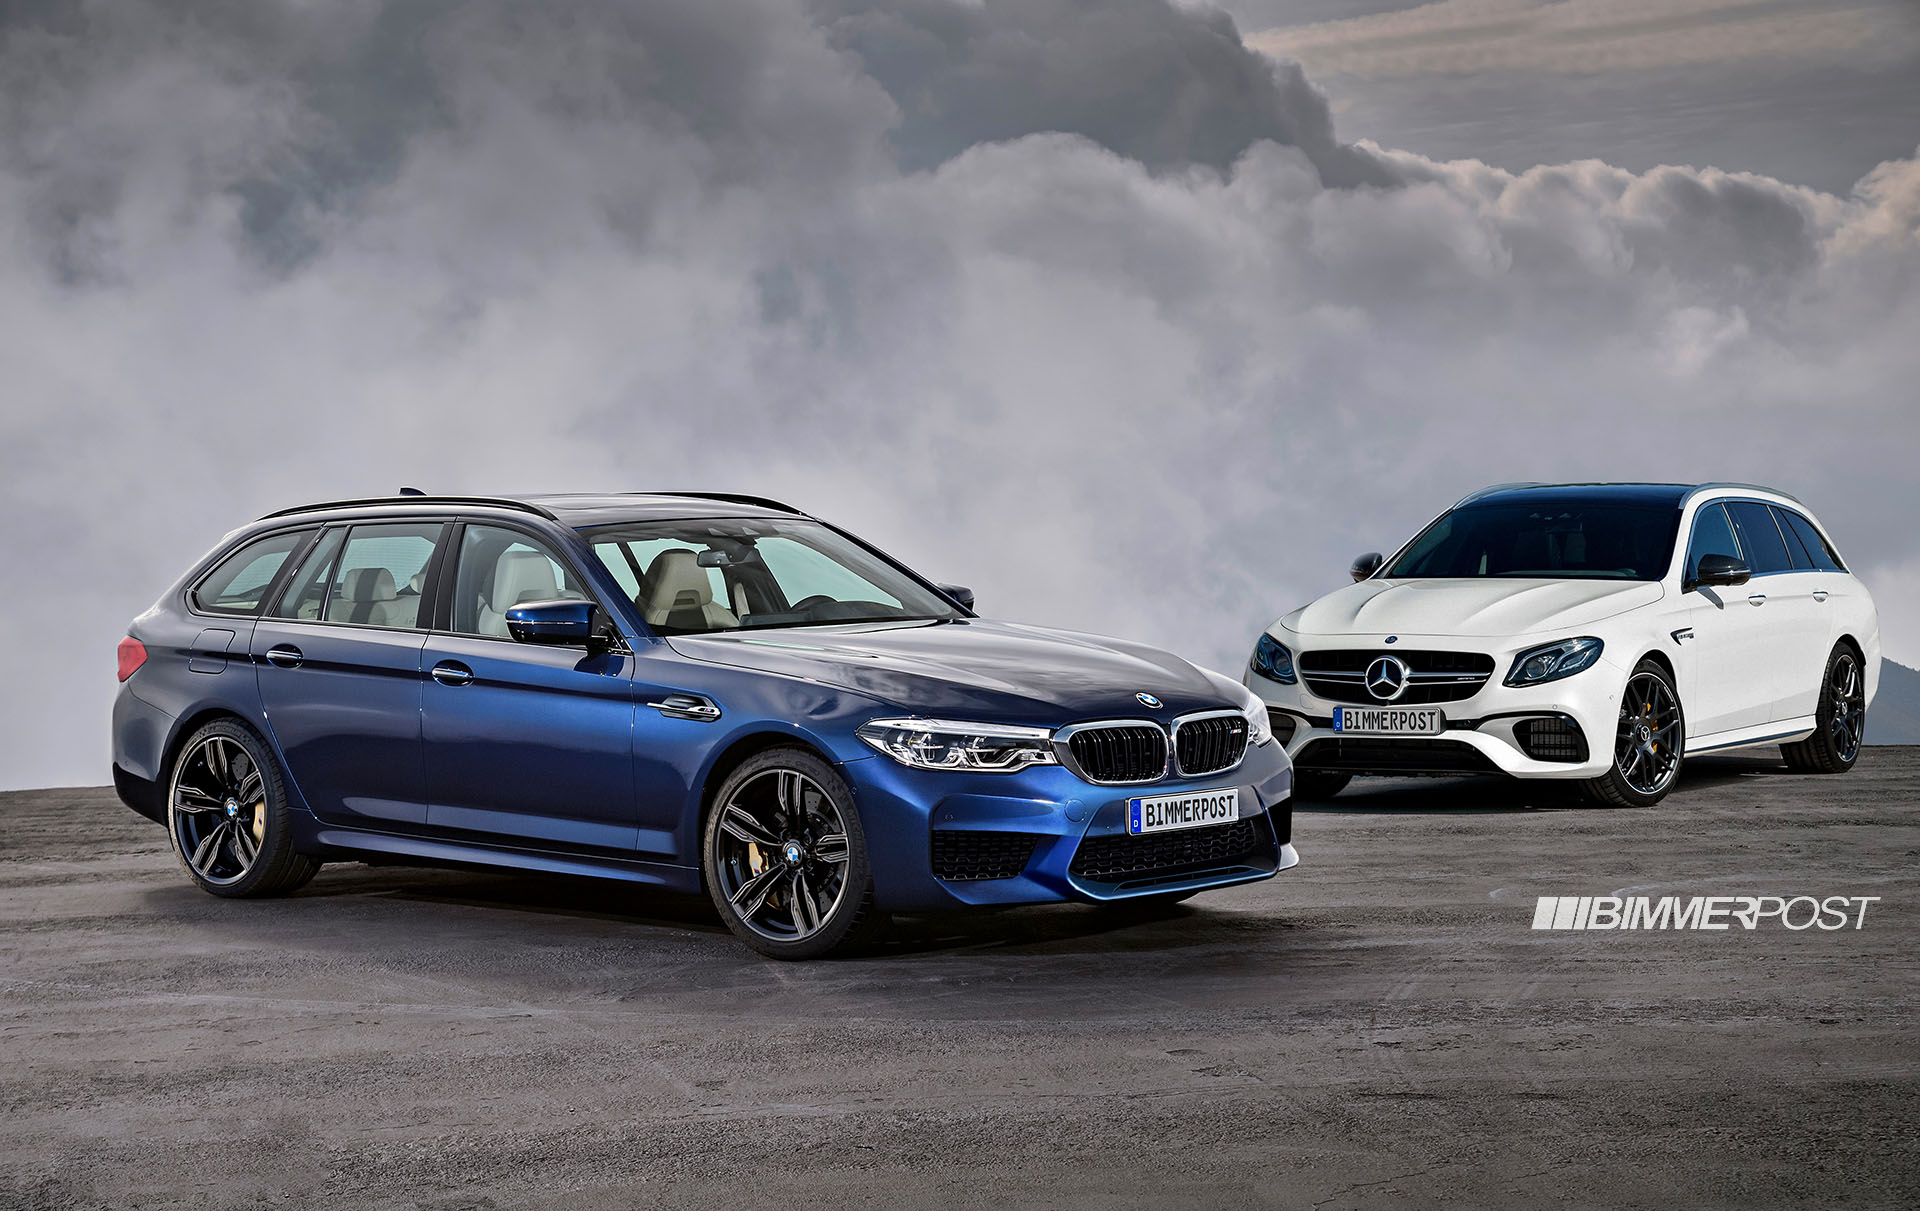 Our Take On The F90 M5 And M5 Touring Yep It S Stunning